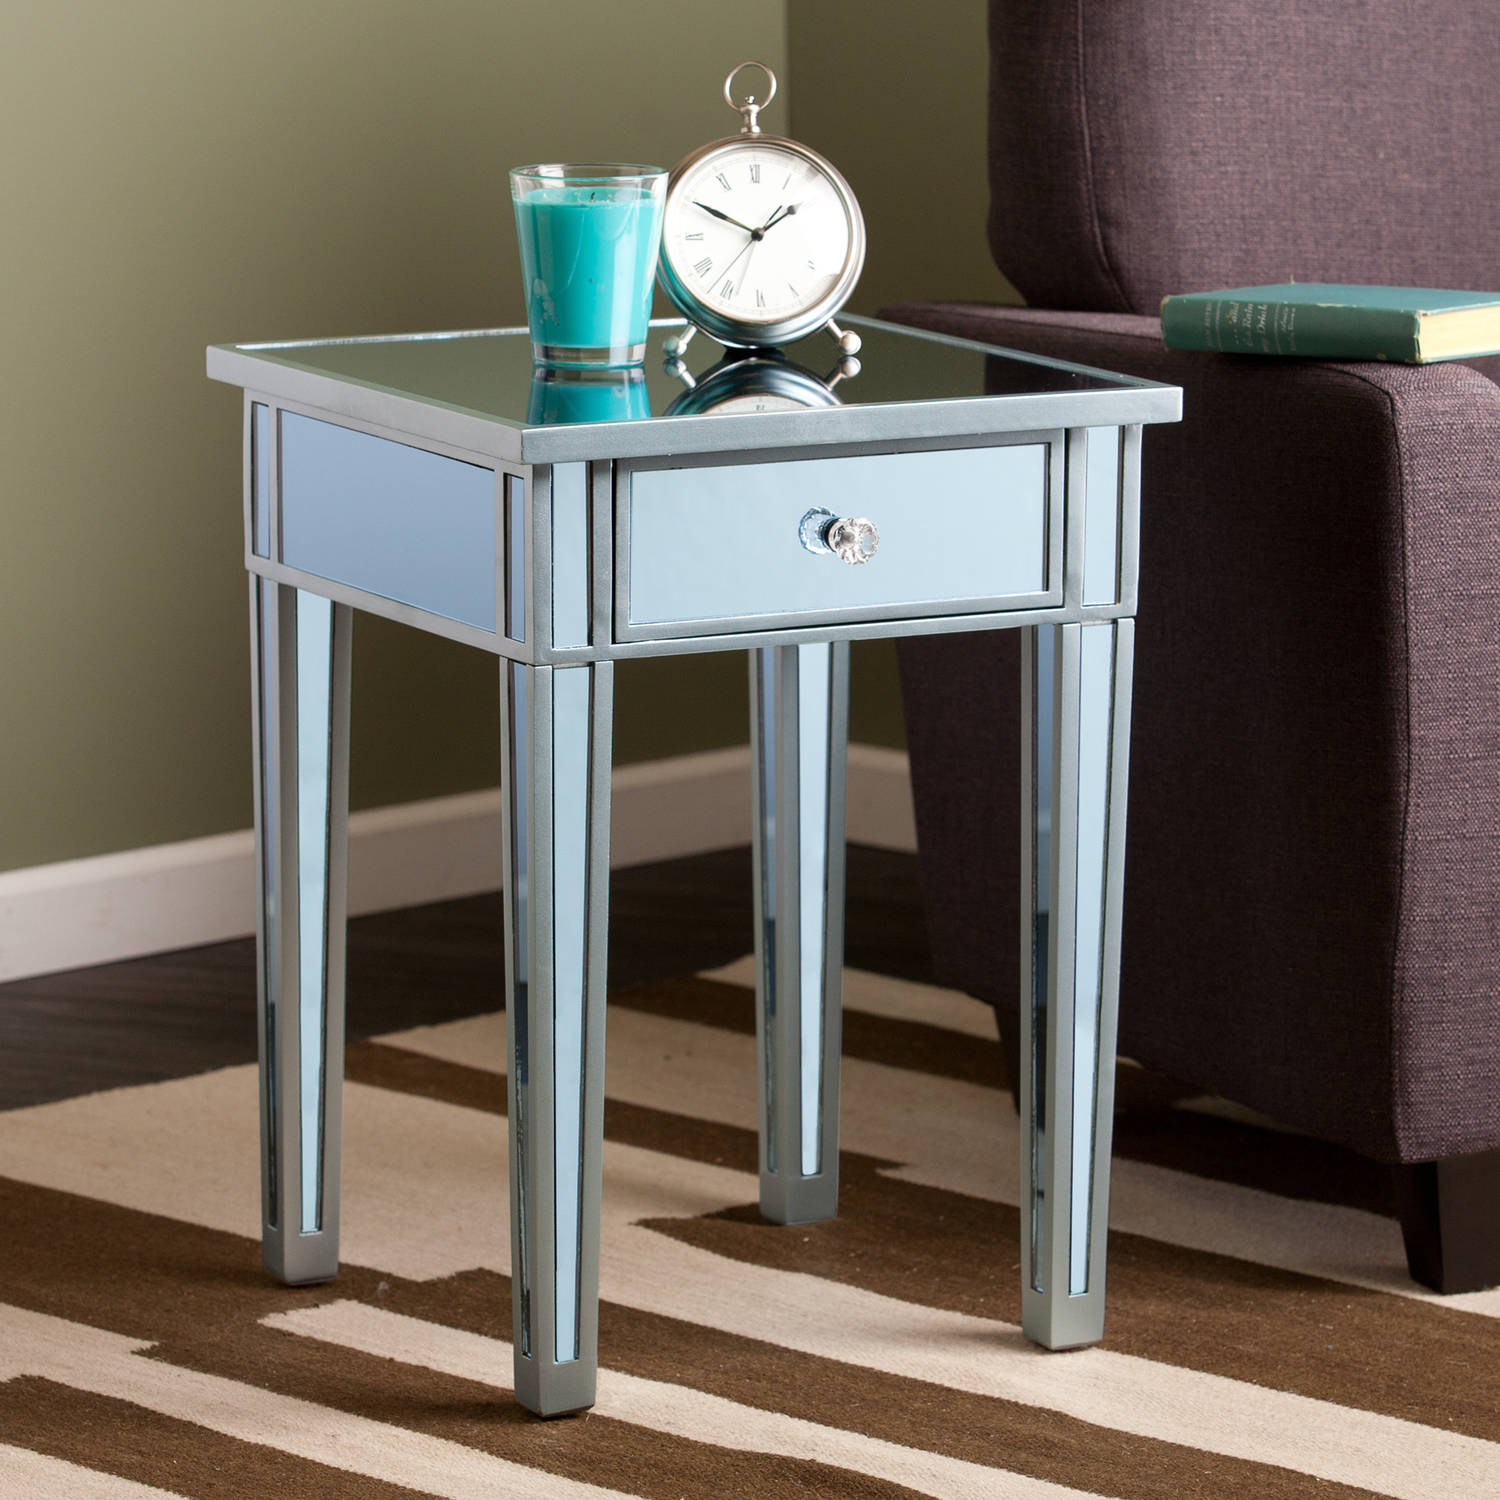 southern enterprises illusions colored mirror accent table blue white pedestal end outdoor patio sofa drum tables living room rectangular side ashley furniture ott bedroom console